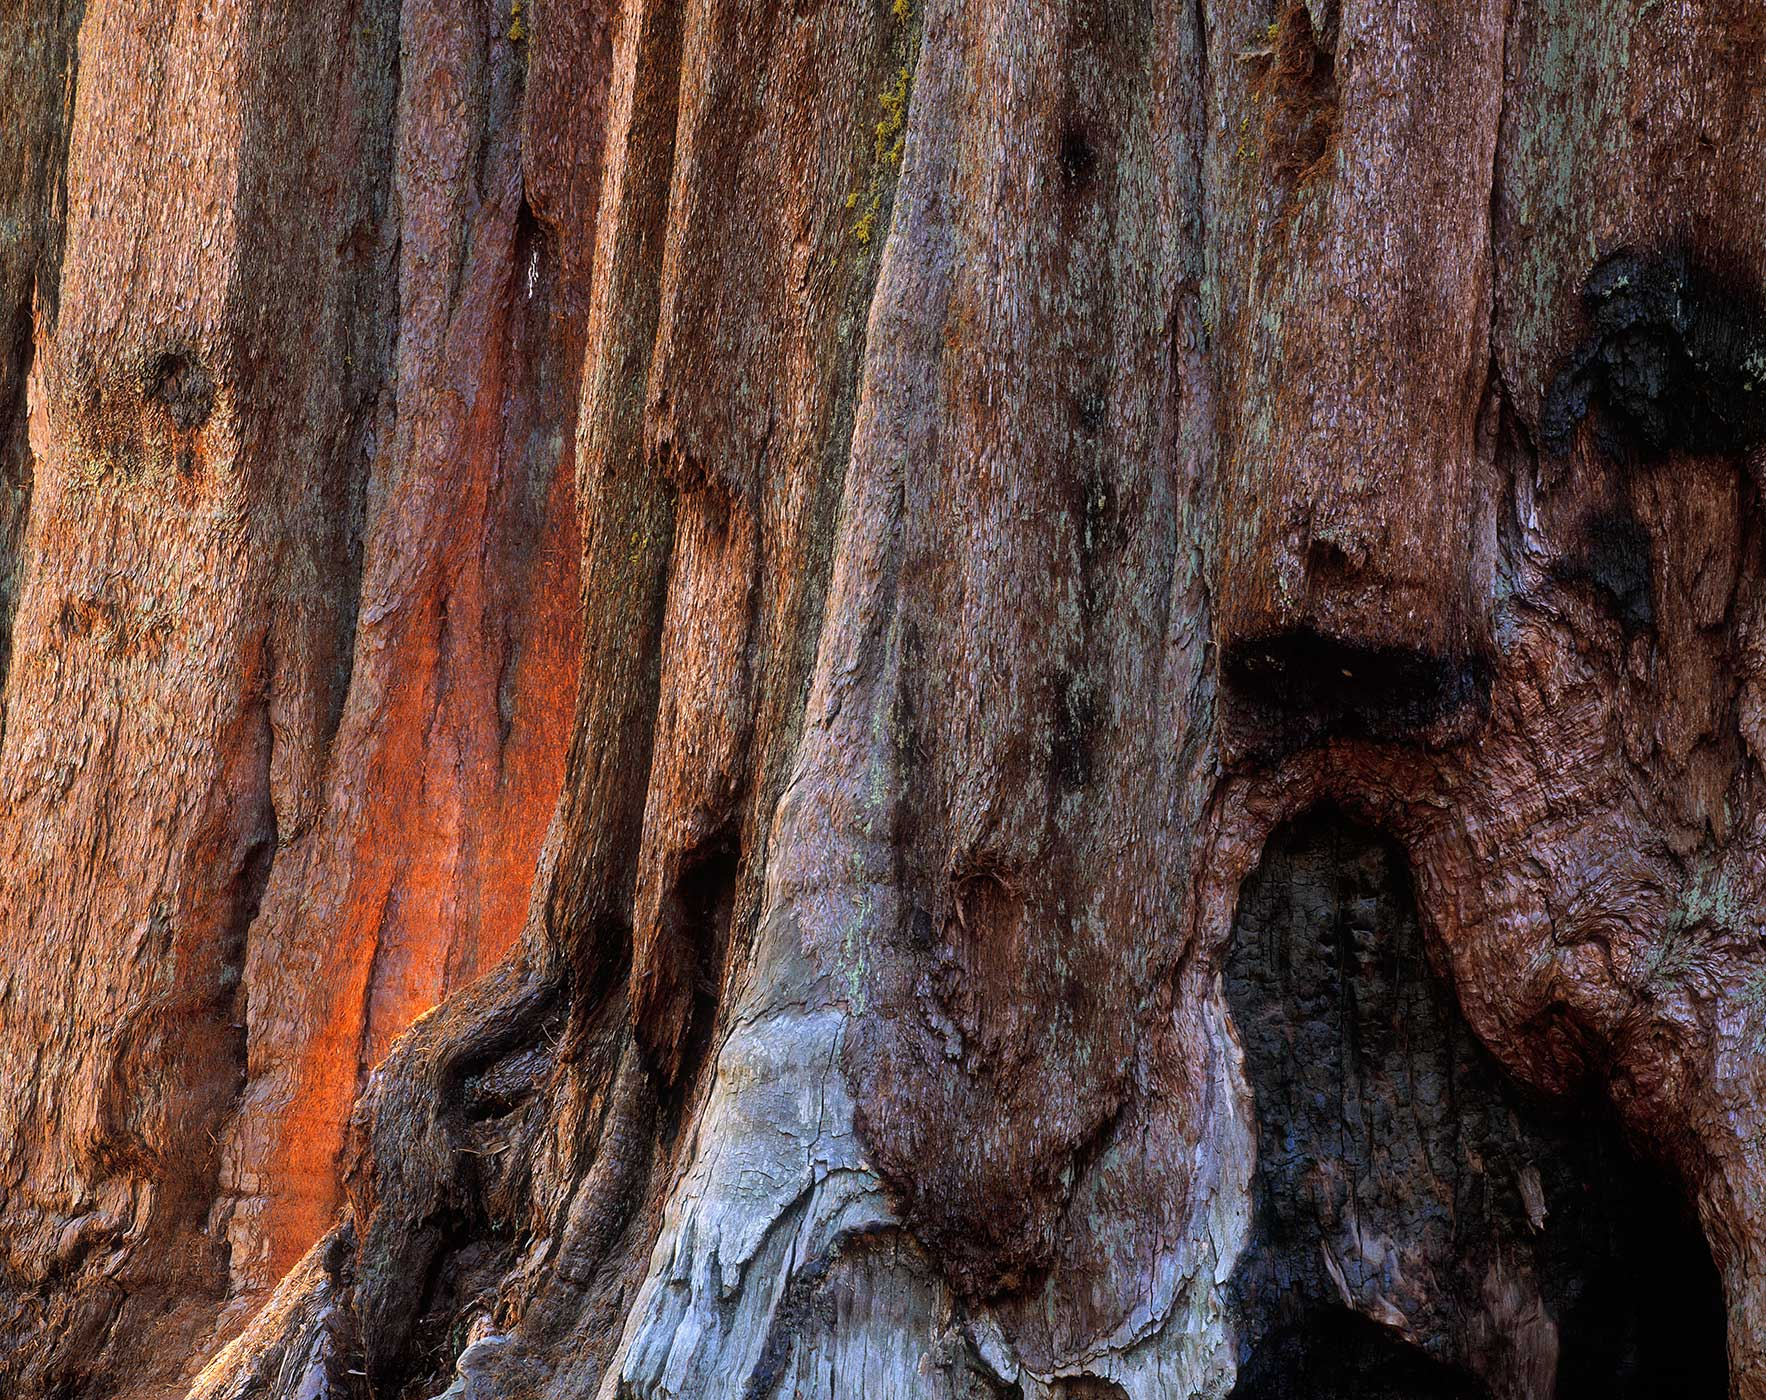 505 Sequoias, Sequoia National Park, California